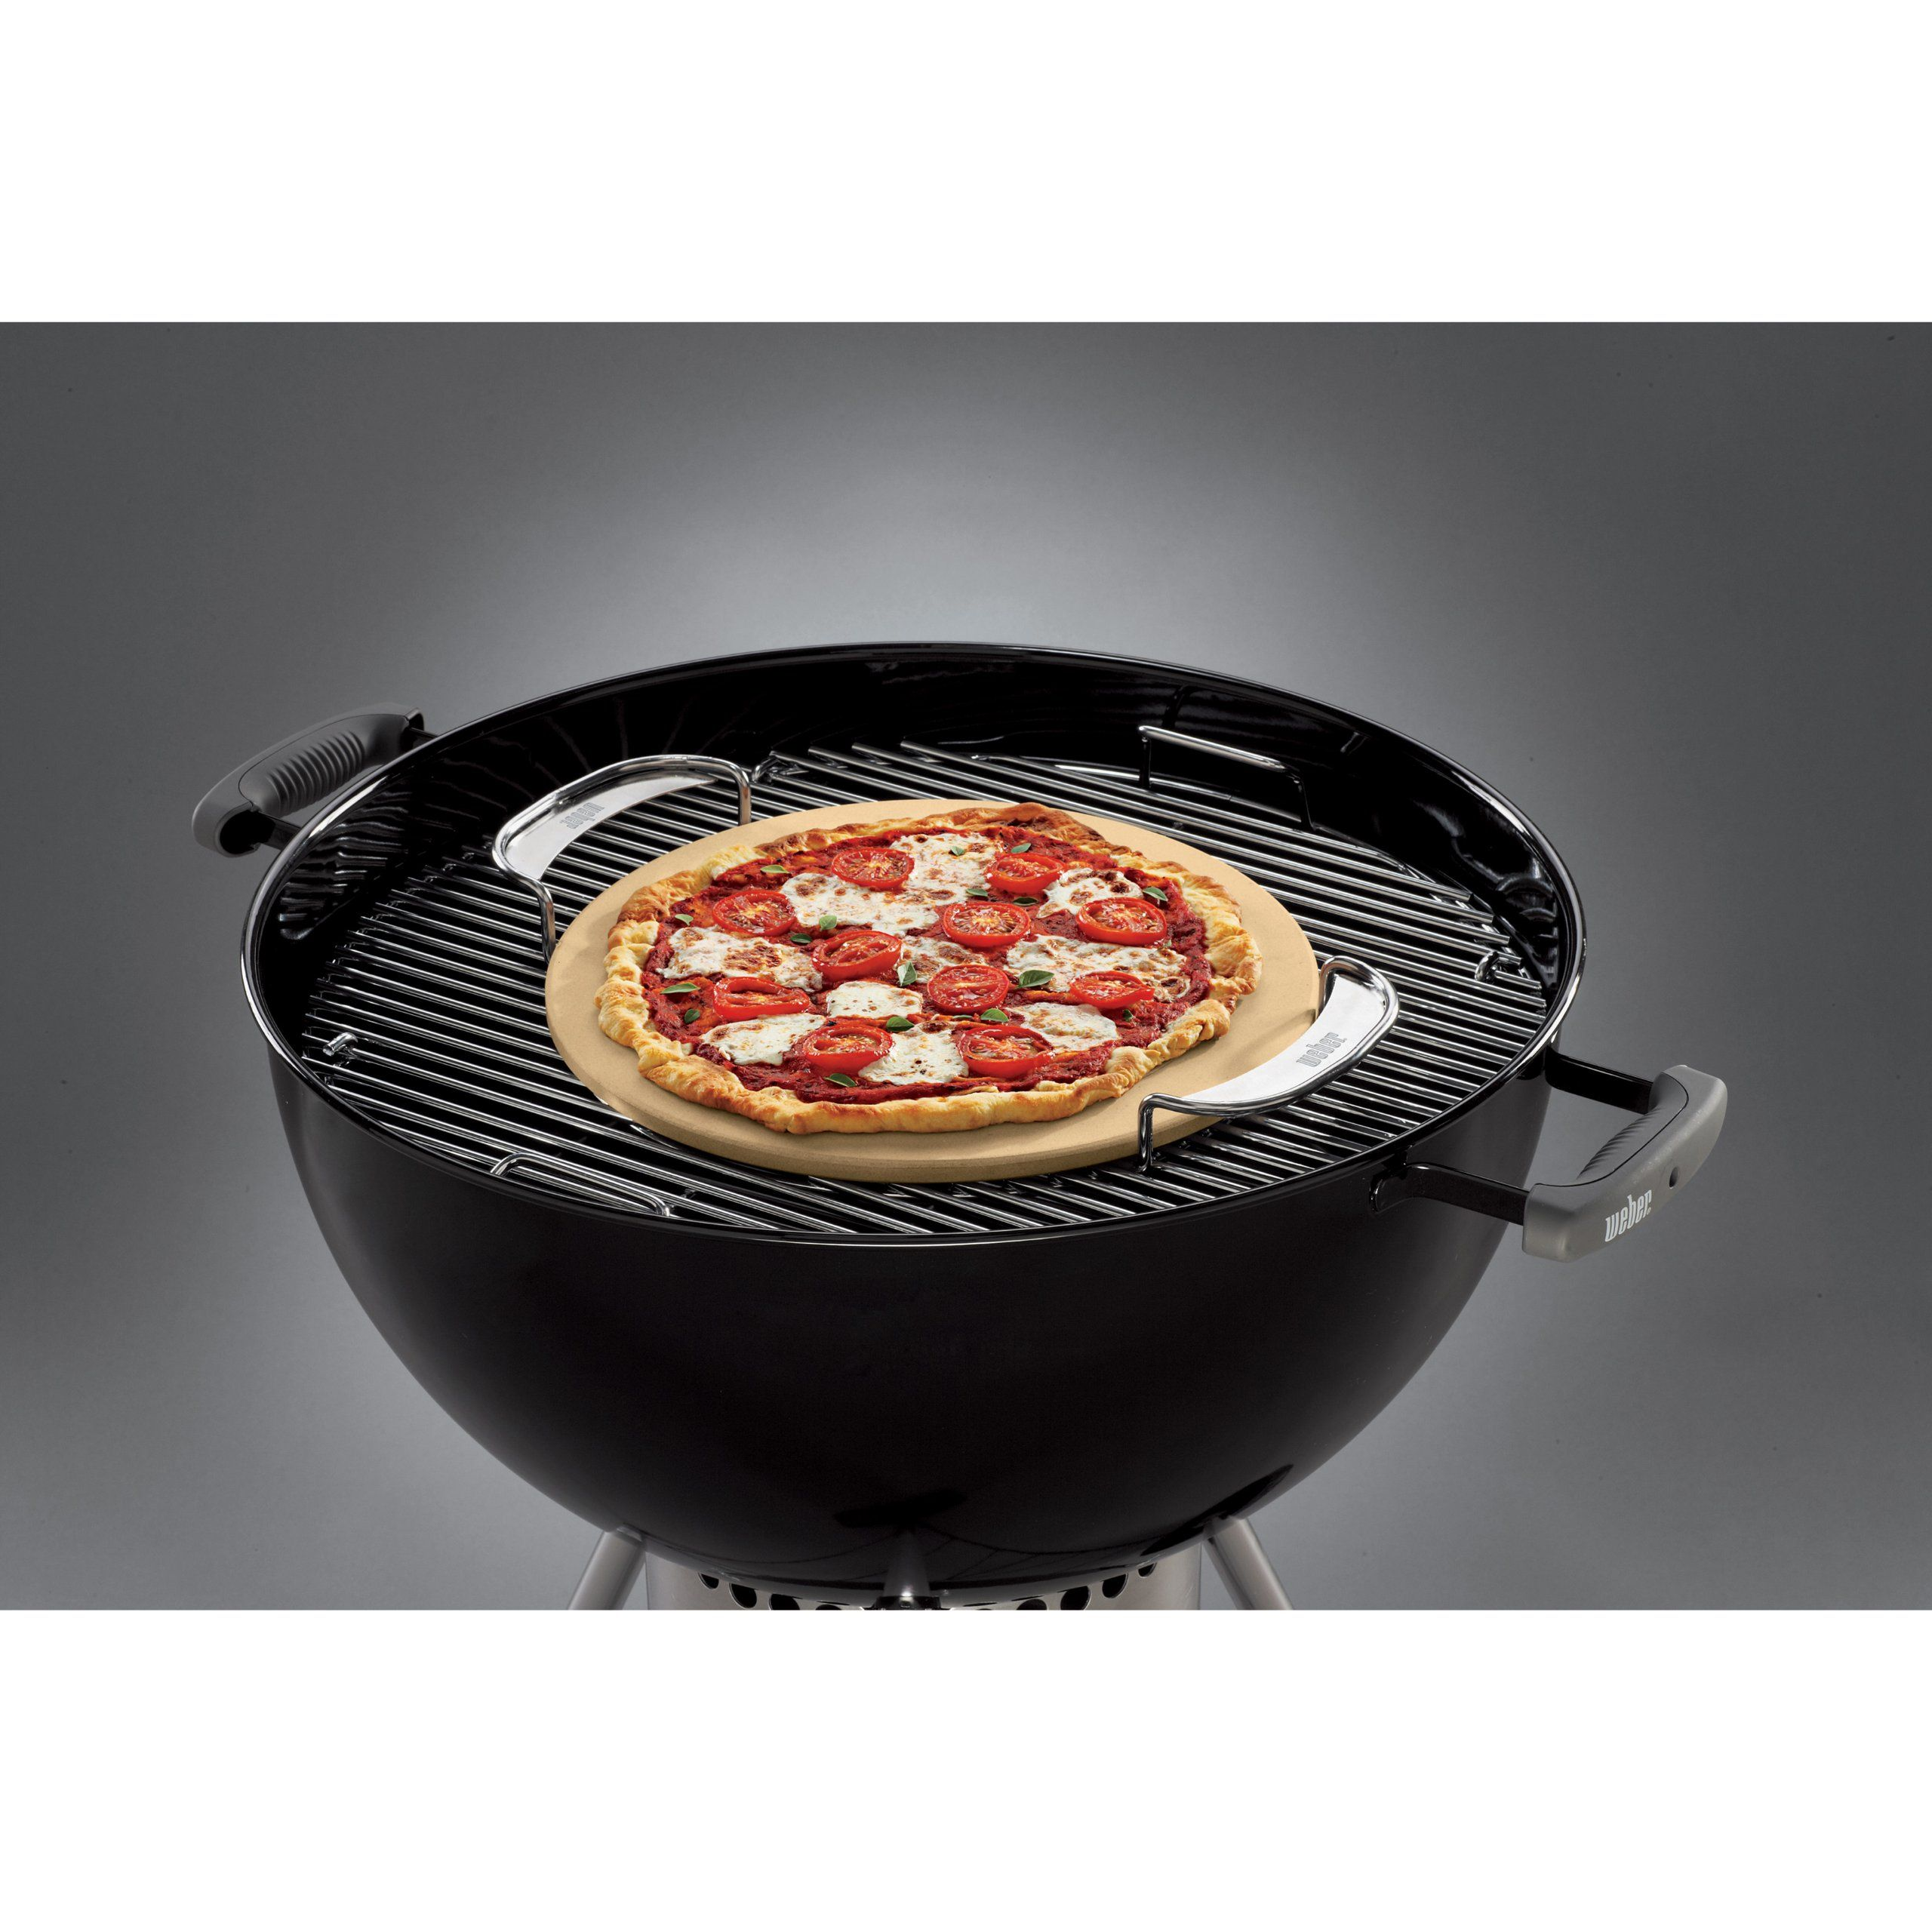 Gourmet Bbq System 35 Amazon Weber 8836 Gourmet Bbq System Pizza Stone With